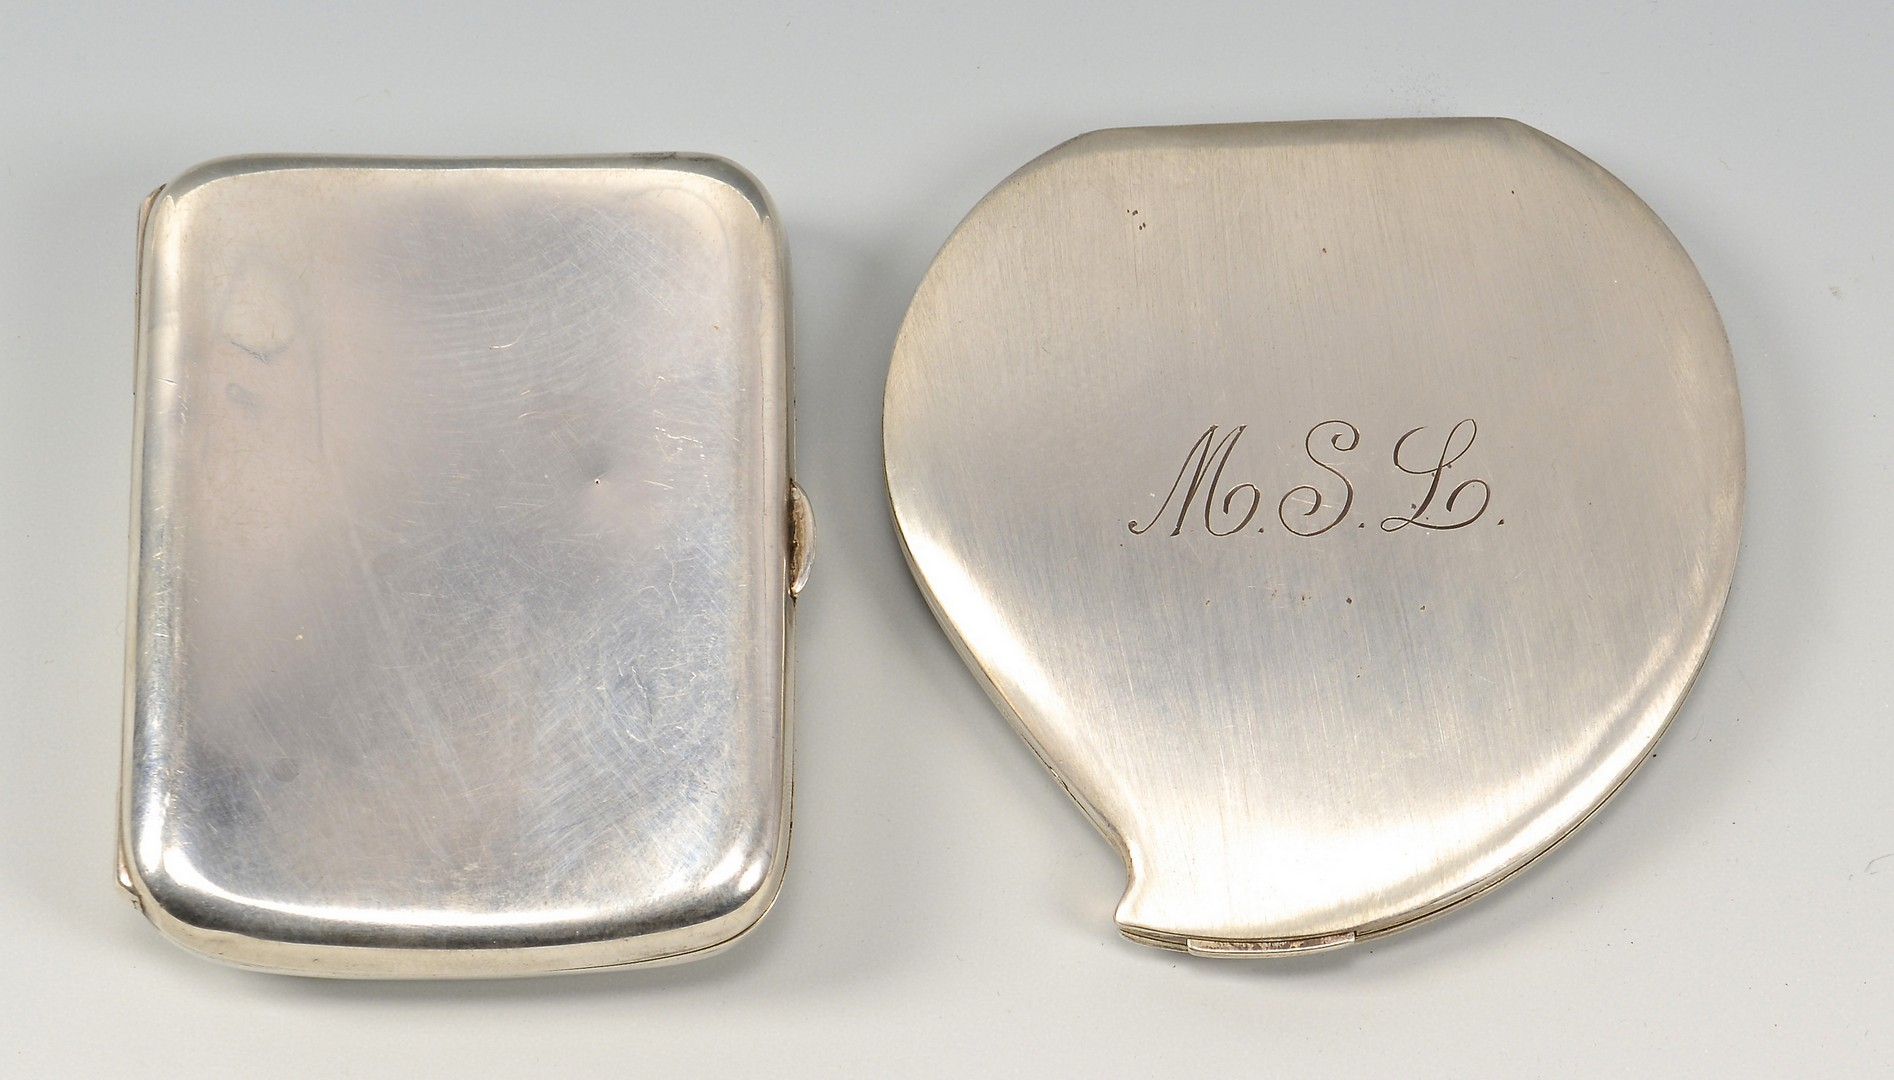 Lot 939: 7 Misc. Silver Items incl. Purses, Card Cases